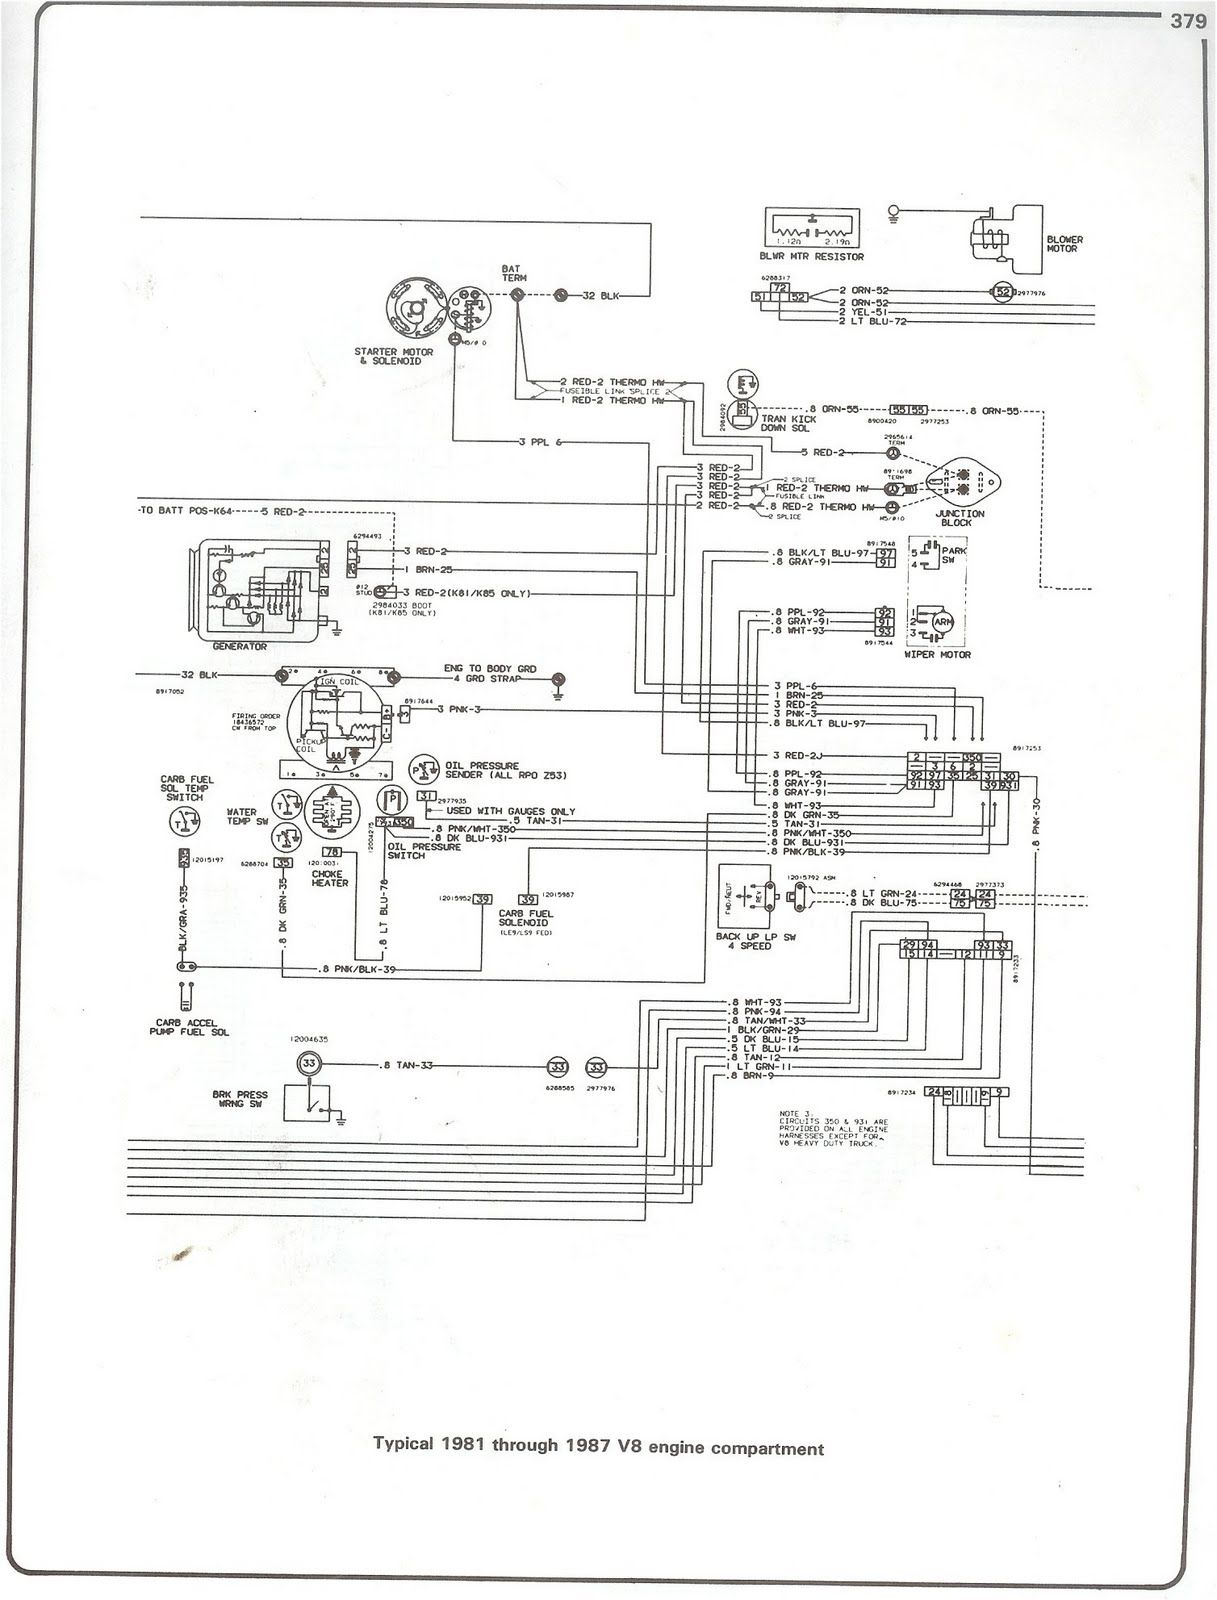 1982 chevy c10 wiring diagram air conditioning this is engine compartment wiring diagram for 1981 trough 1987  engine compartment wiring diagram